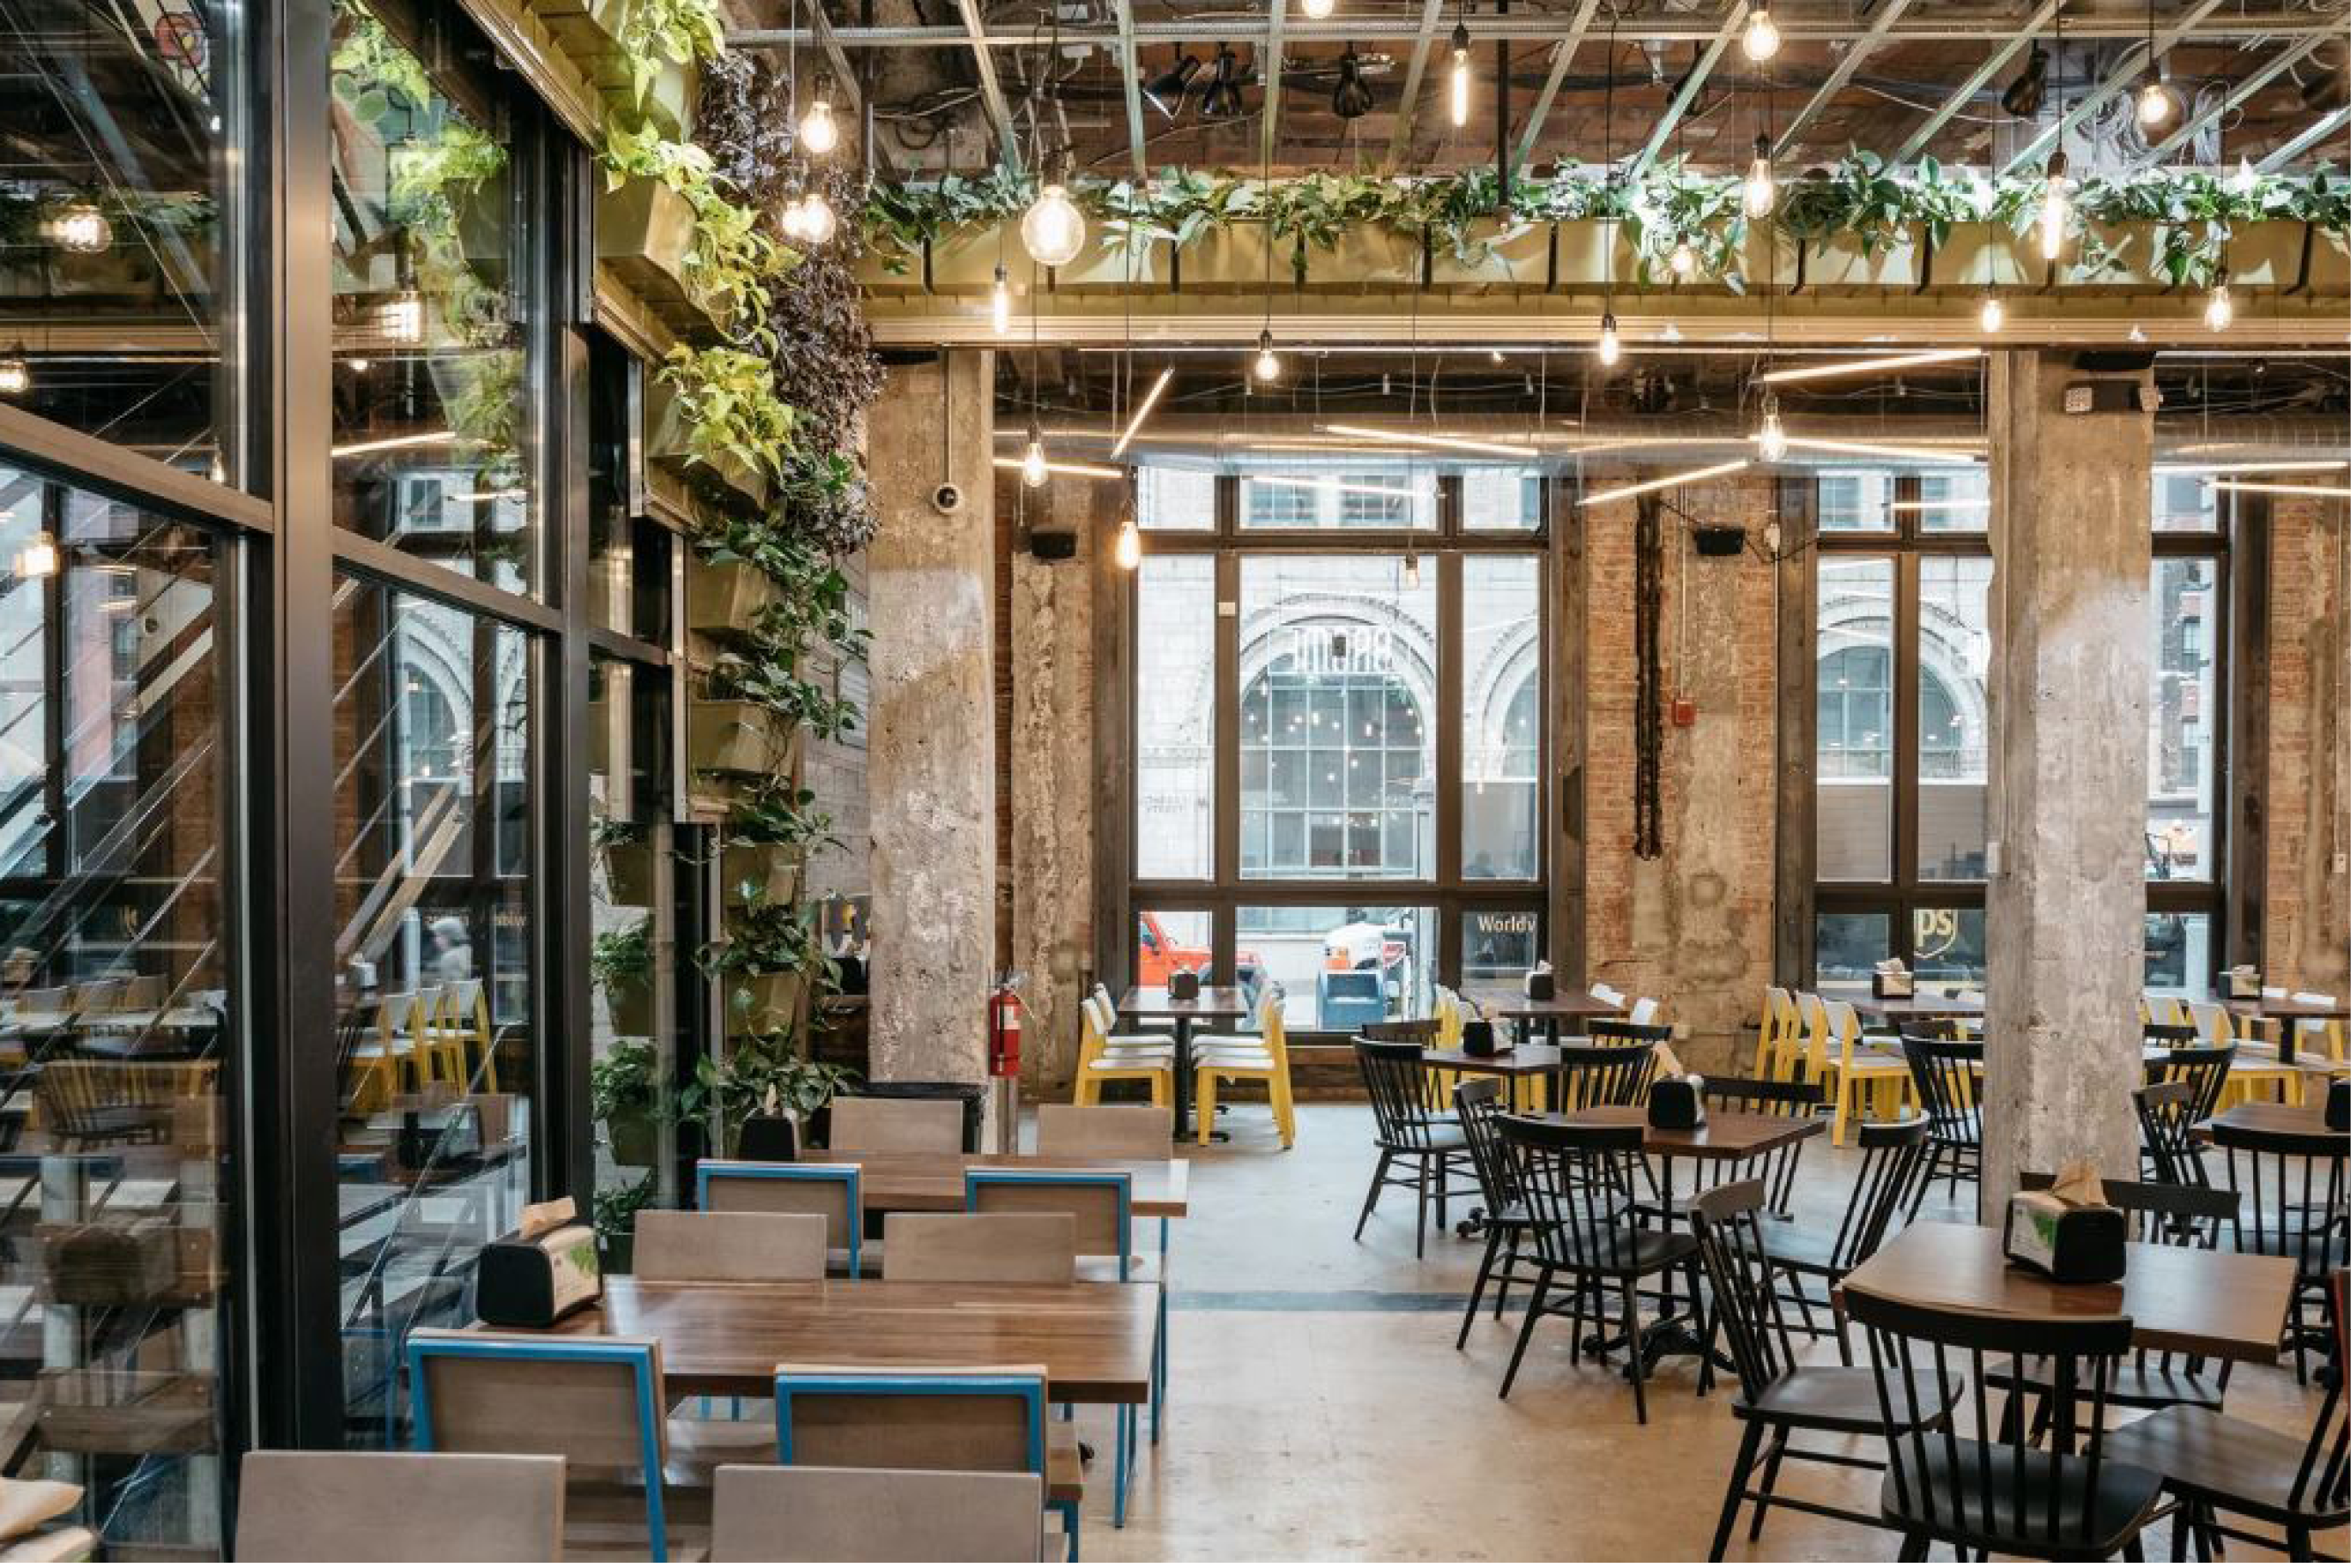 Brome Modern Eatery featuring Brady Sadie and Hugh Chairs